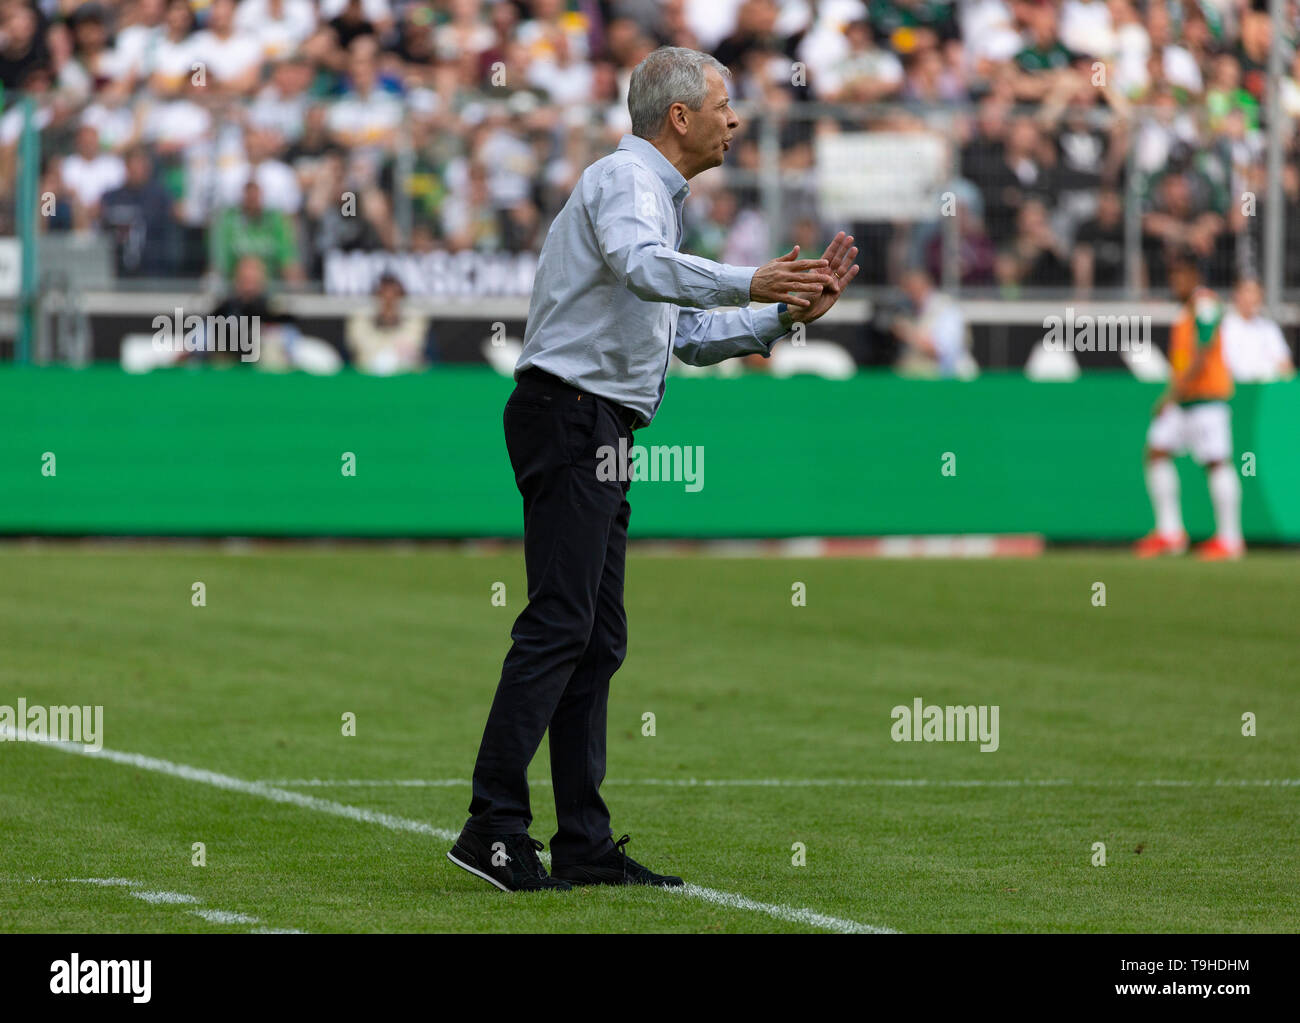 sports, football, Bundesliga, 2018/2019, Borussia Moenchengladbach vs. BVB Borussia Dortmund 0-2, Stadium Borussia Park, head coach Lucien Favre (BVB), DFL REGULATIONS PROHIBIT ANY USE OF PHOTOGRAPHS AS IMAGE SEQUENCES AND/OR QUASI-VIDEO - Stock Image